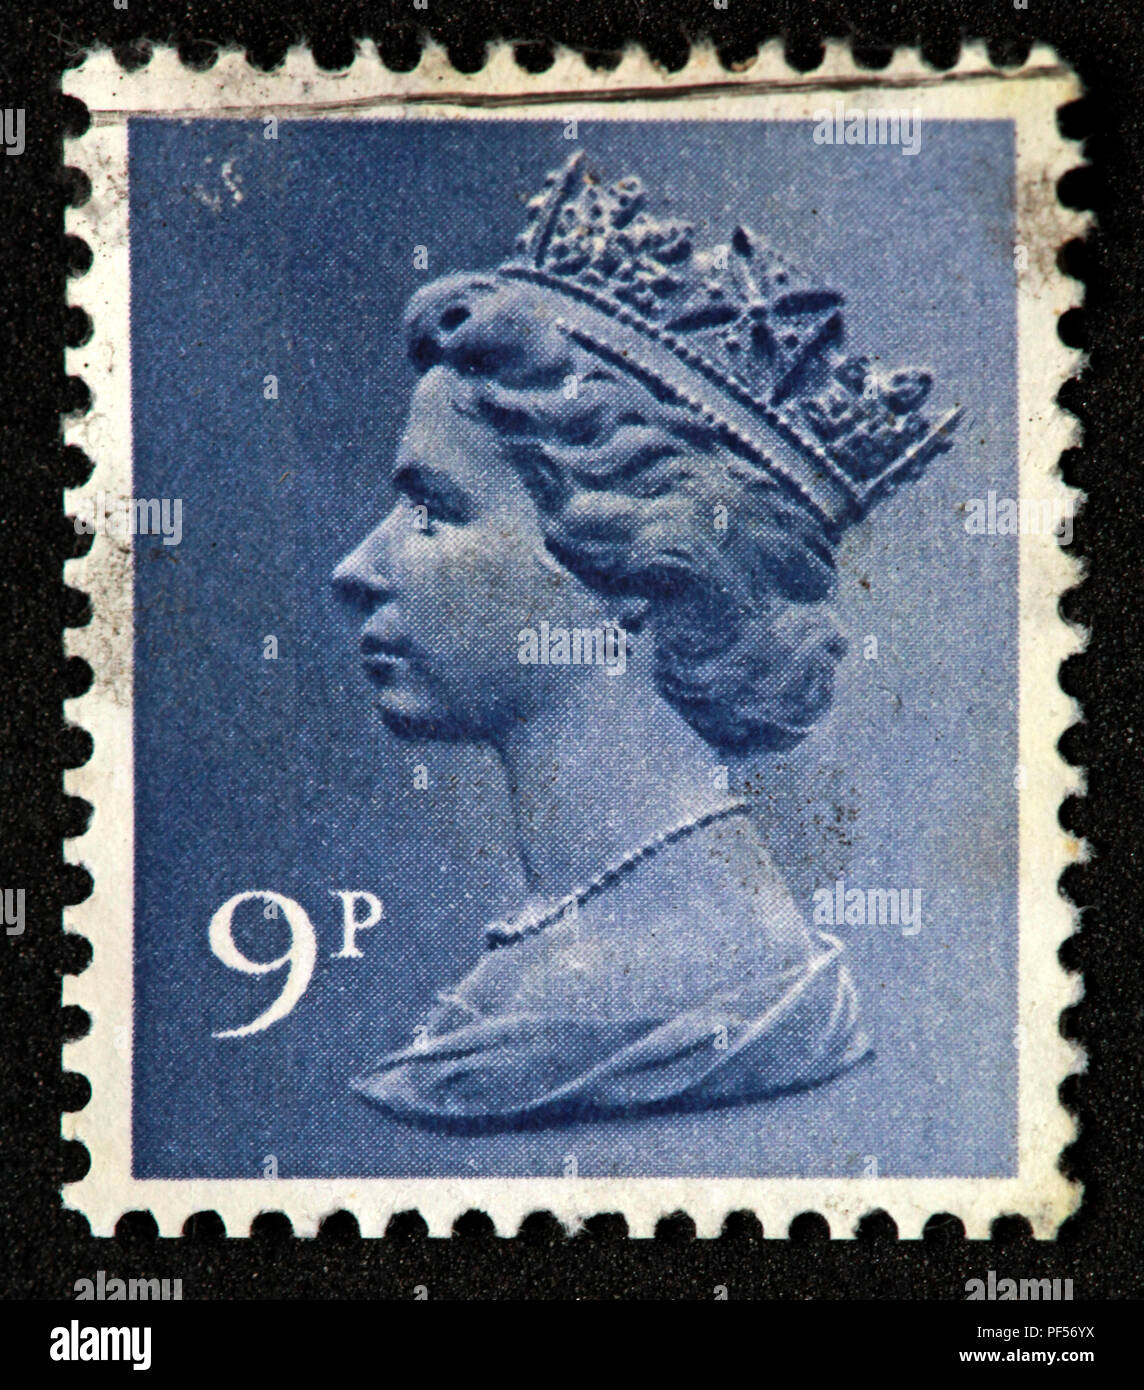 Used franked blue British UK stamp - 9p - Queen Elizabeth II - Stock Image